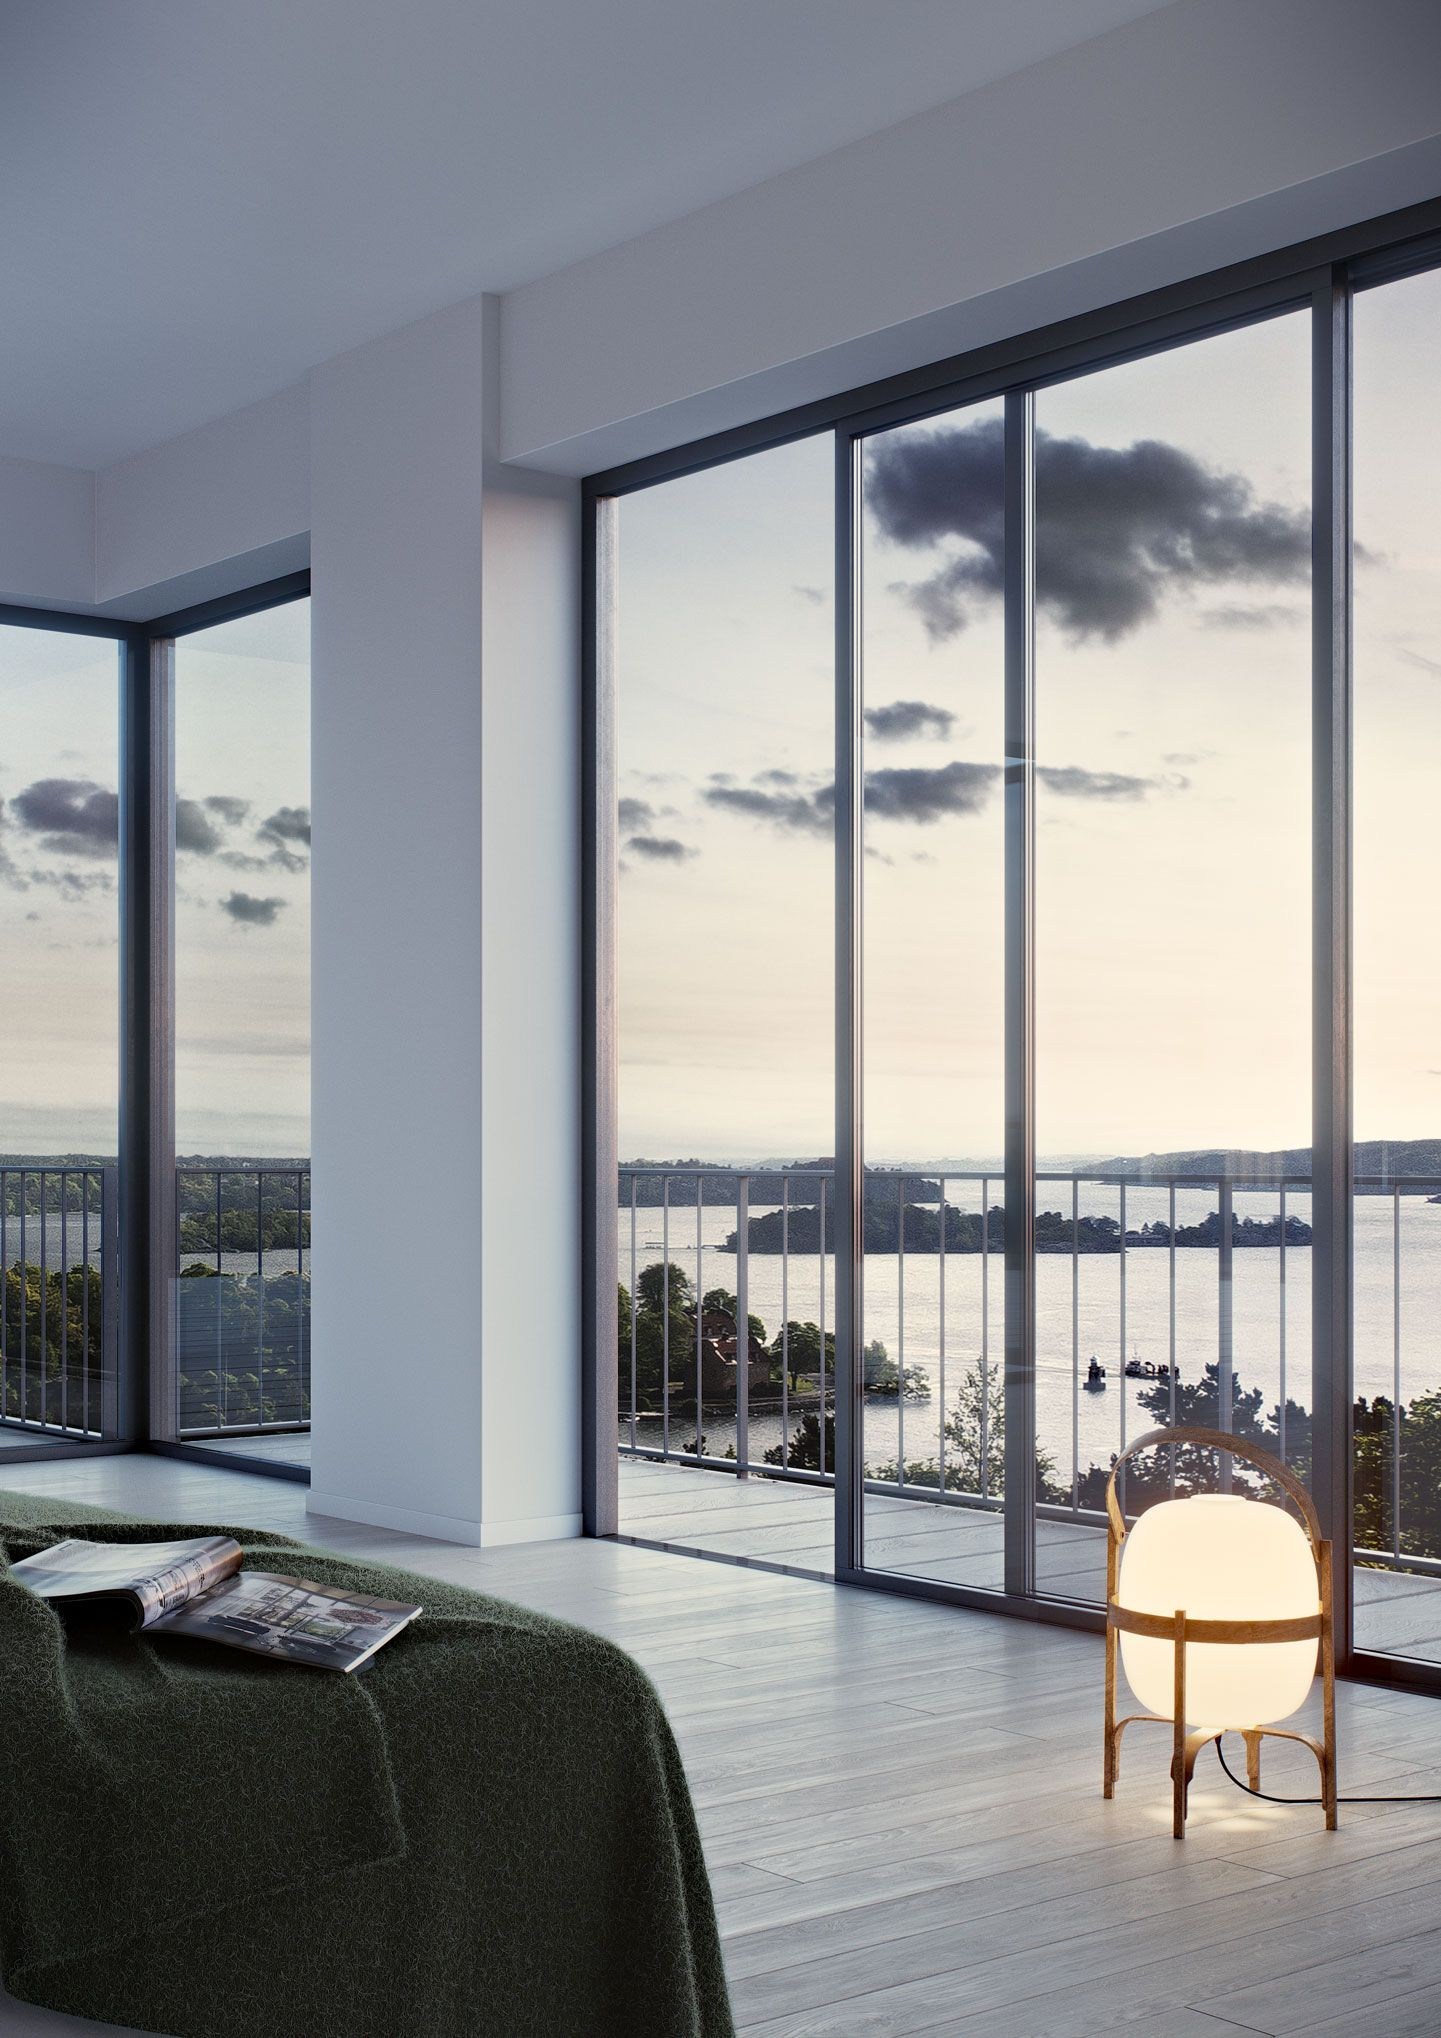 House design with sliding window  pin by jaime vilasboas on home  pinterest  interior bedroom and